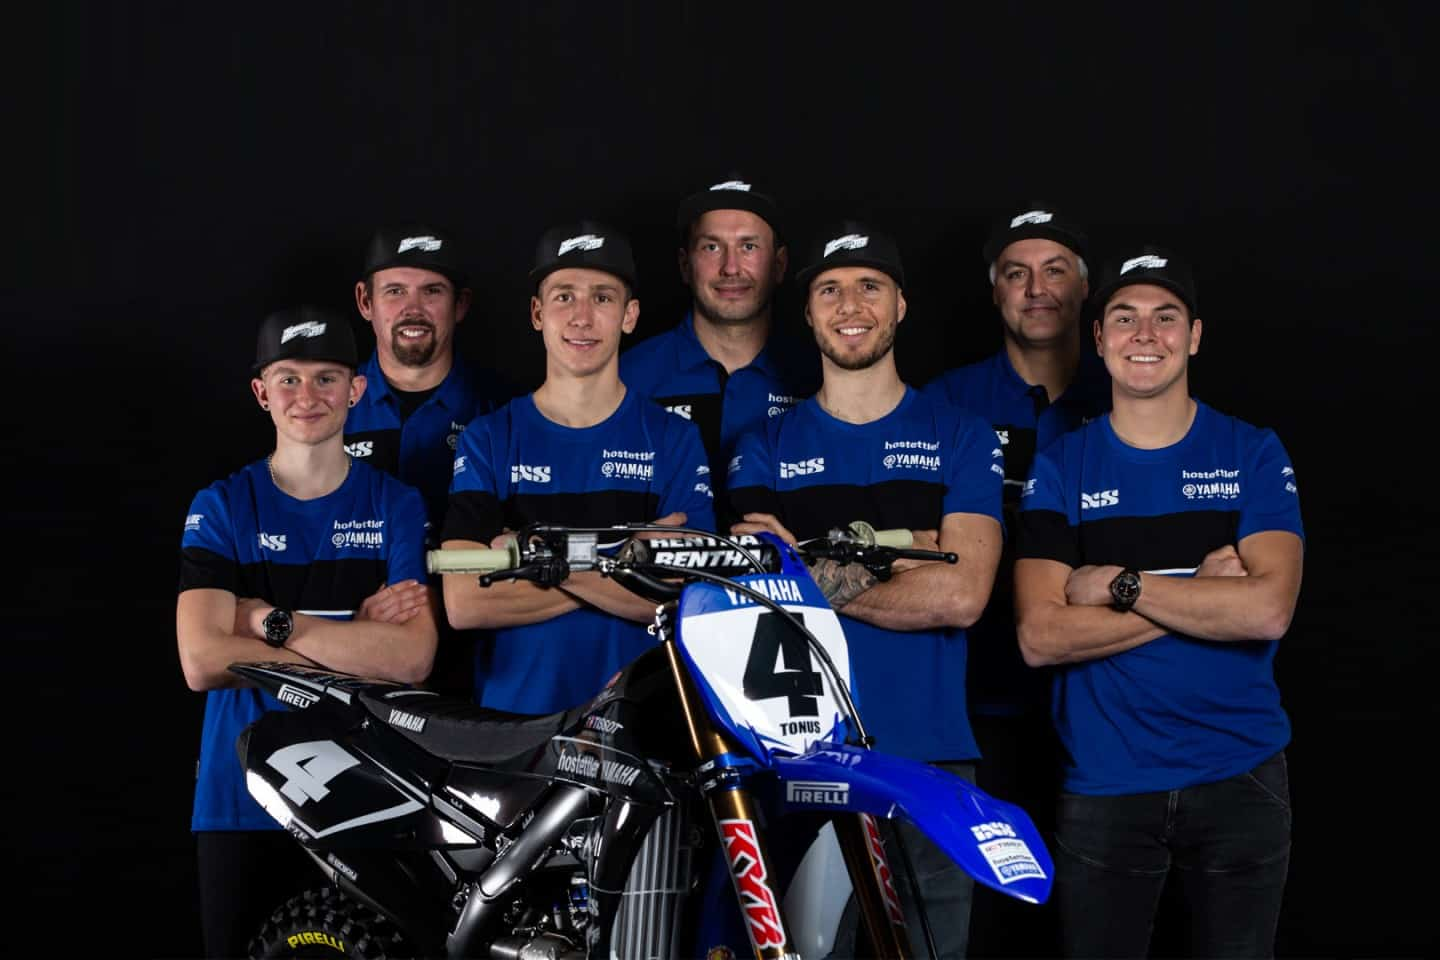 PM: HOSTETTLER MXGP TEAM